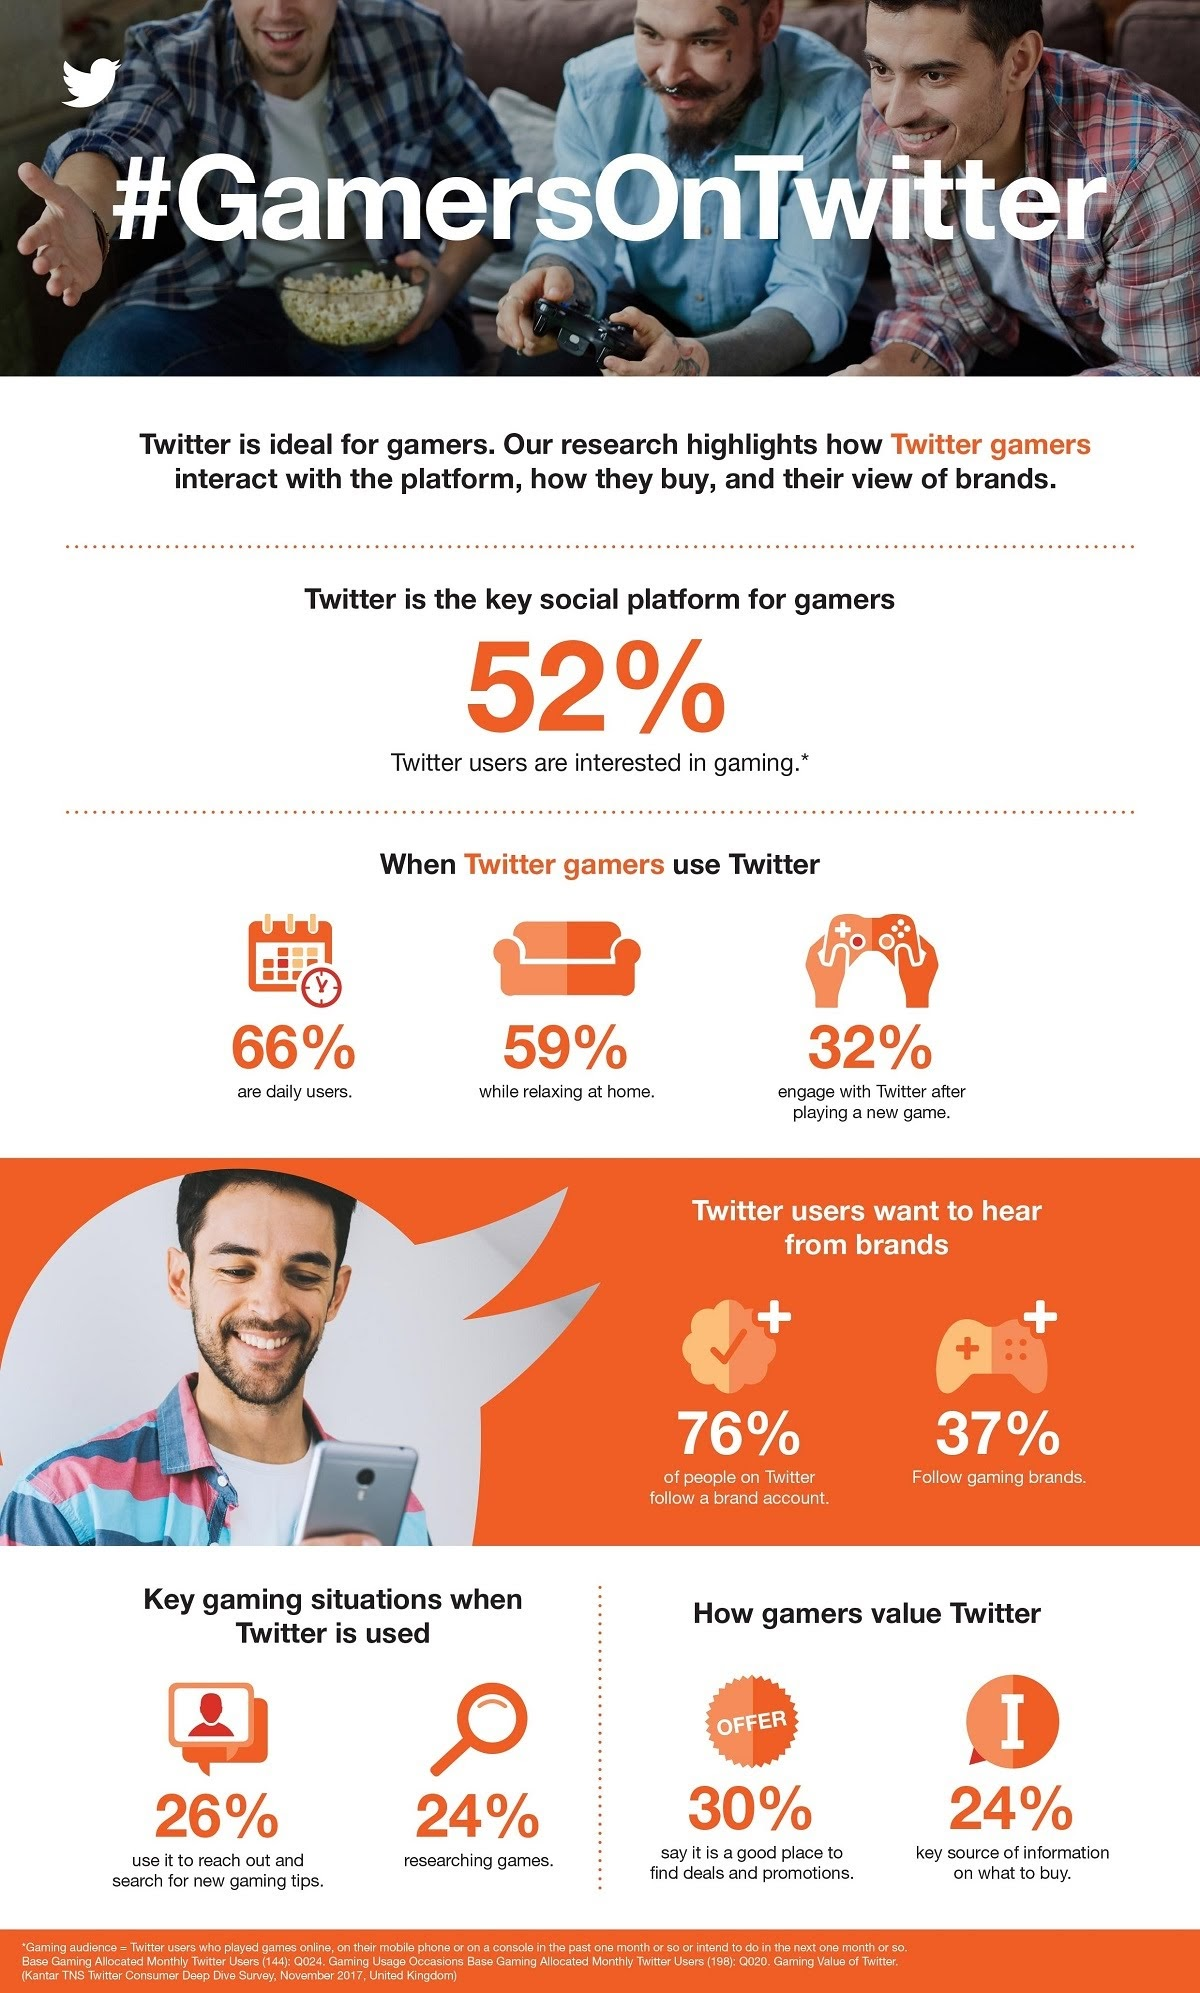 How Twitter can connect brands with Gamers